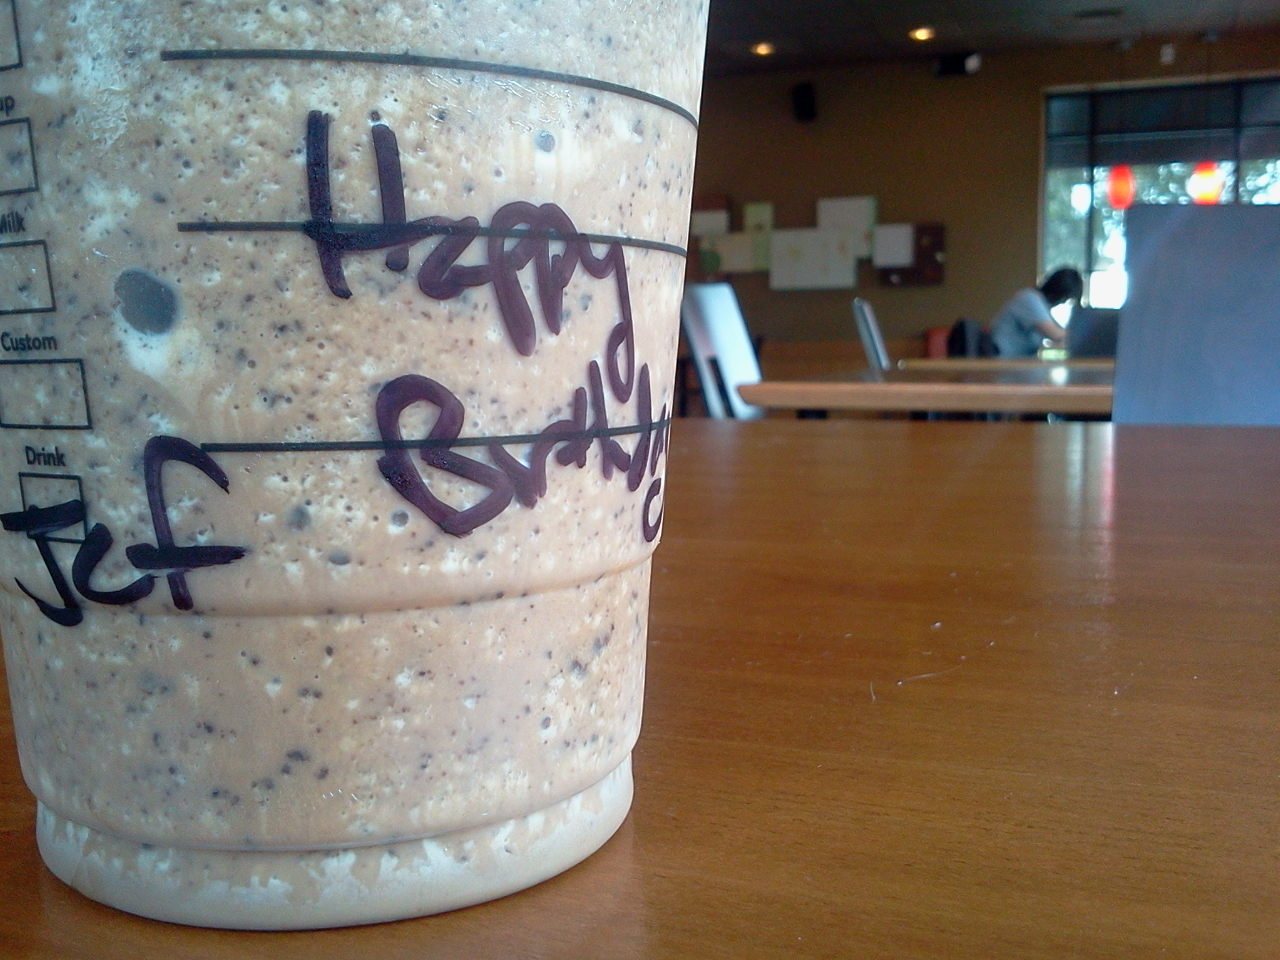 Getting Free Starbucks On Your Birthday